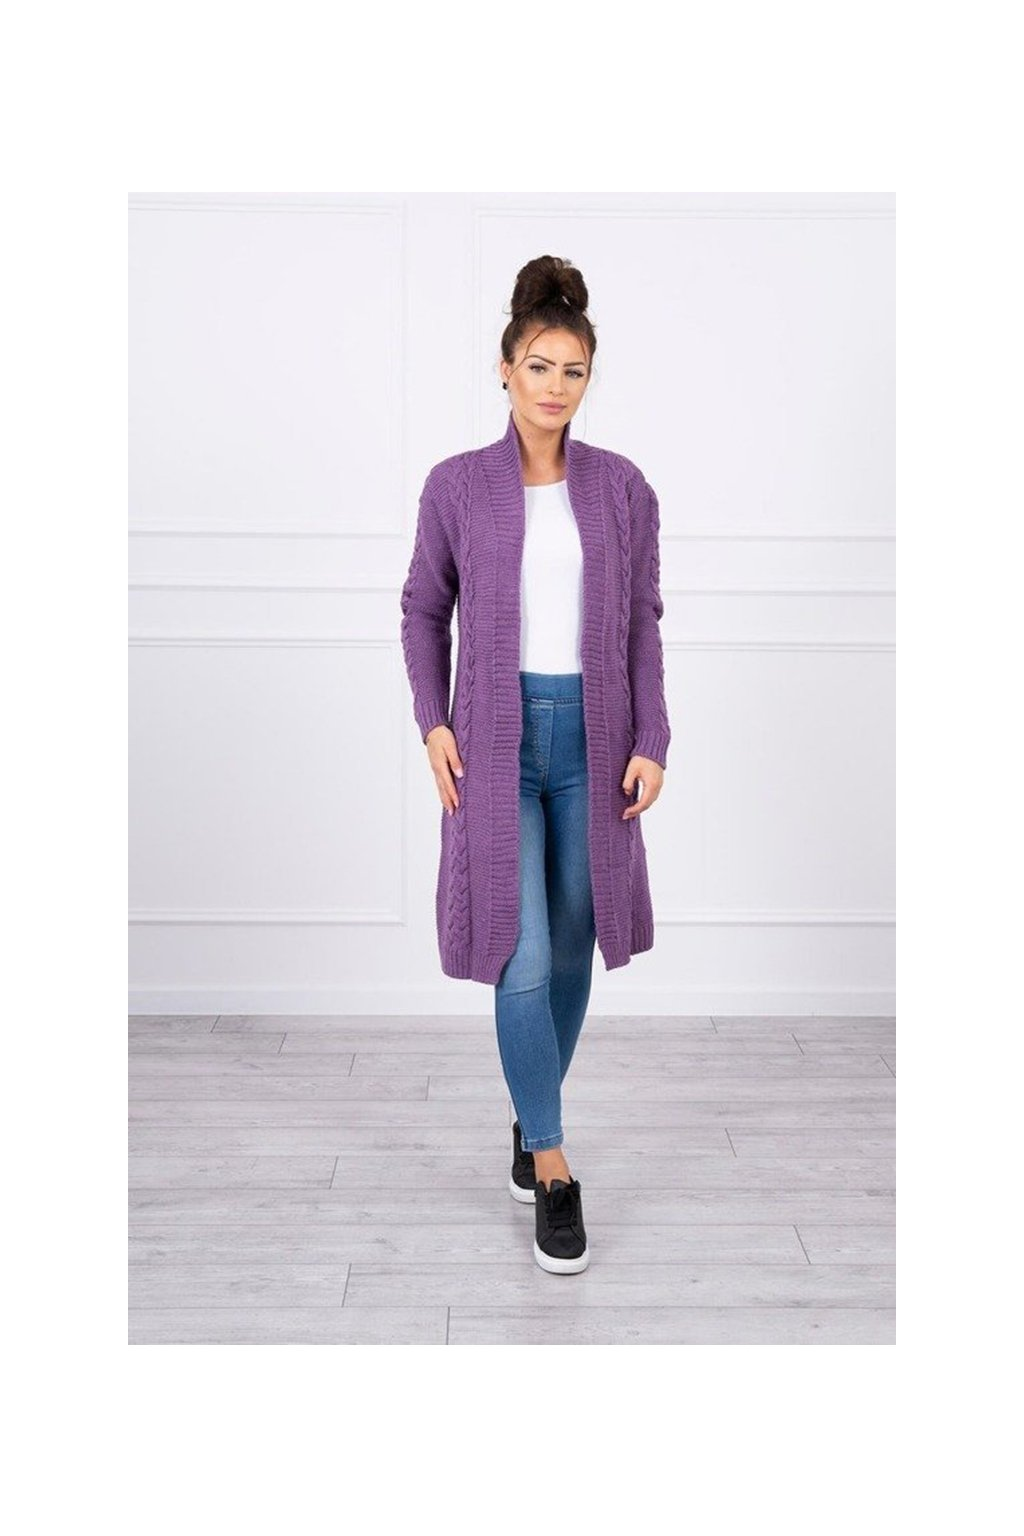 eng pm Sweater Cardigan weave the braid purple 17602 1